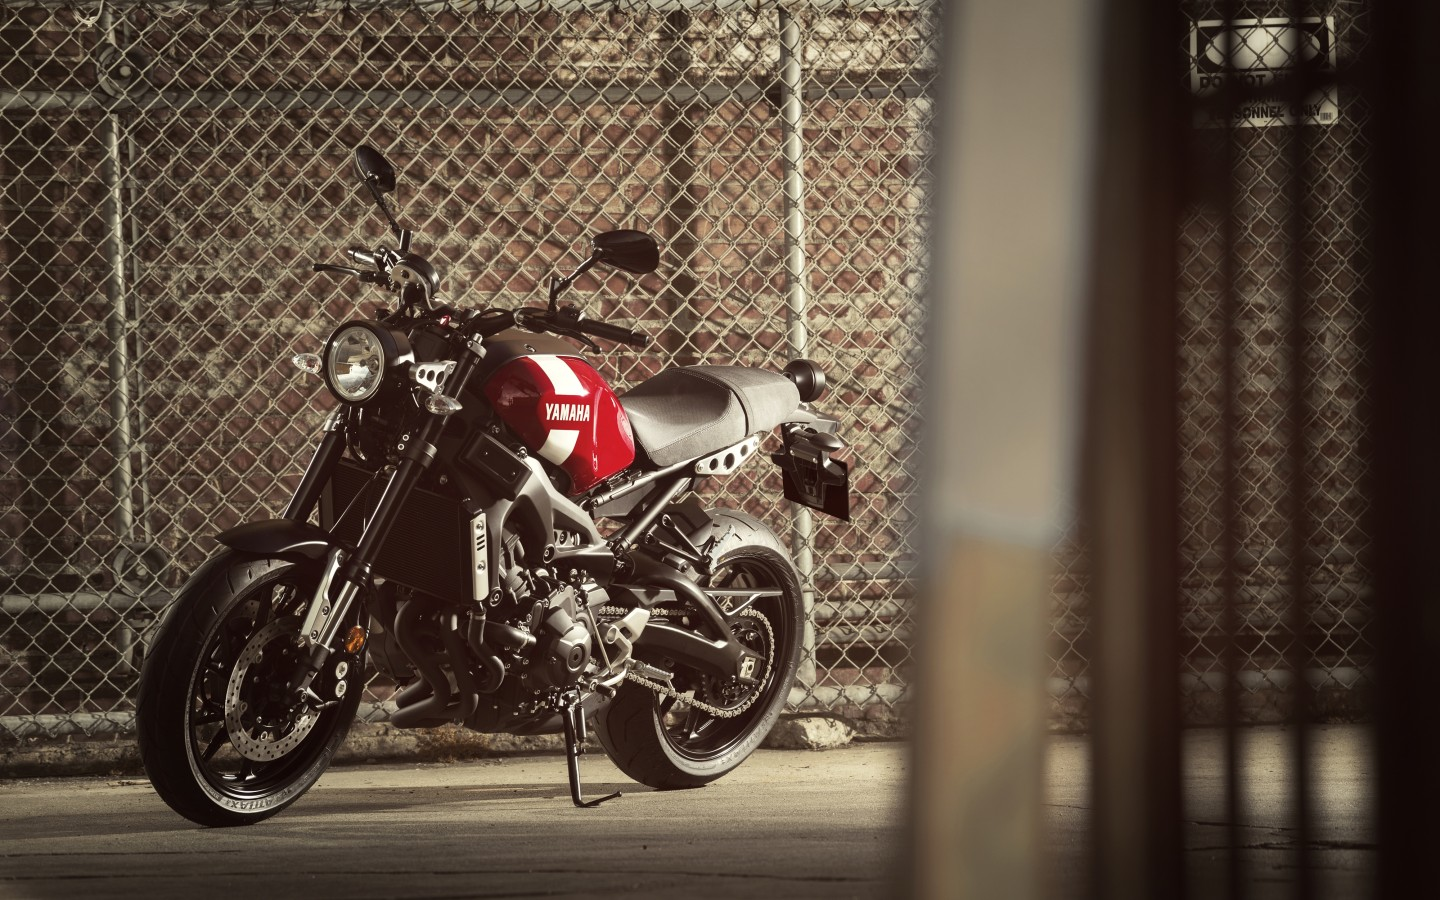 Cute Photography Wallpaper For Iphone 2018 Yamaha Xsr900 4k Wallpapers Hd Wallpapers Id 23681